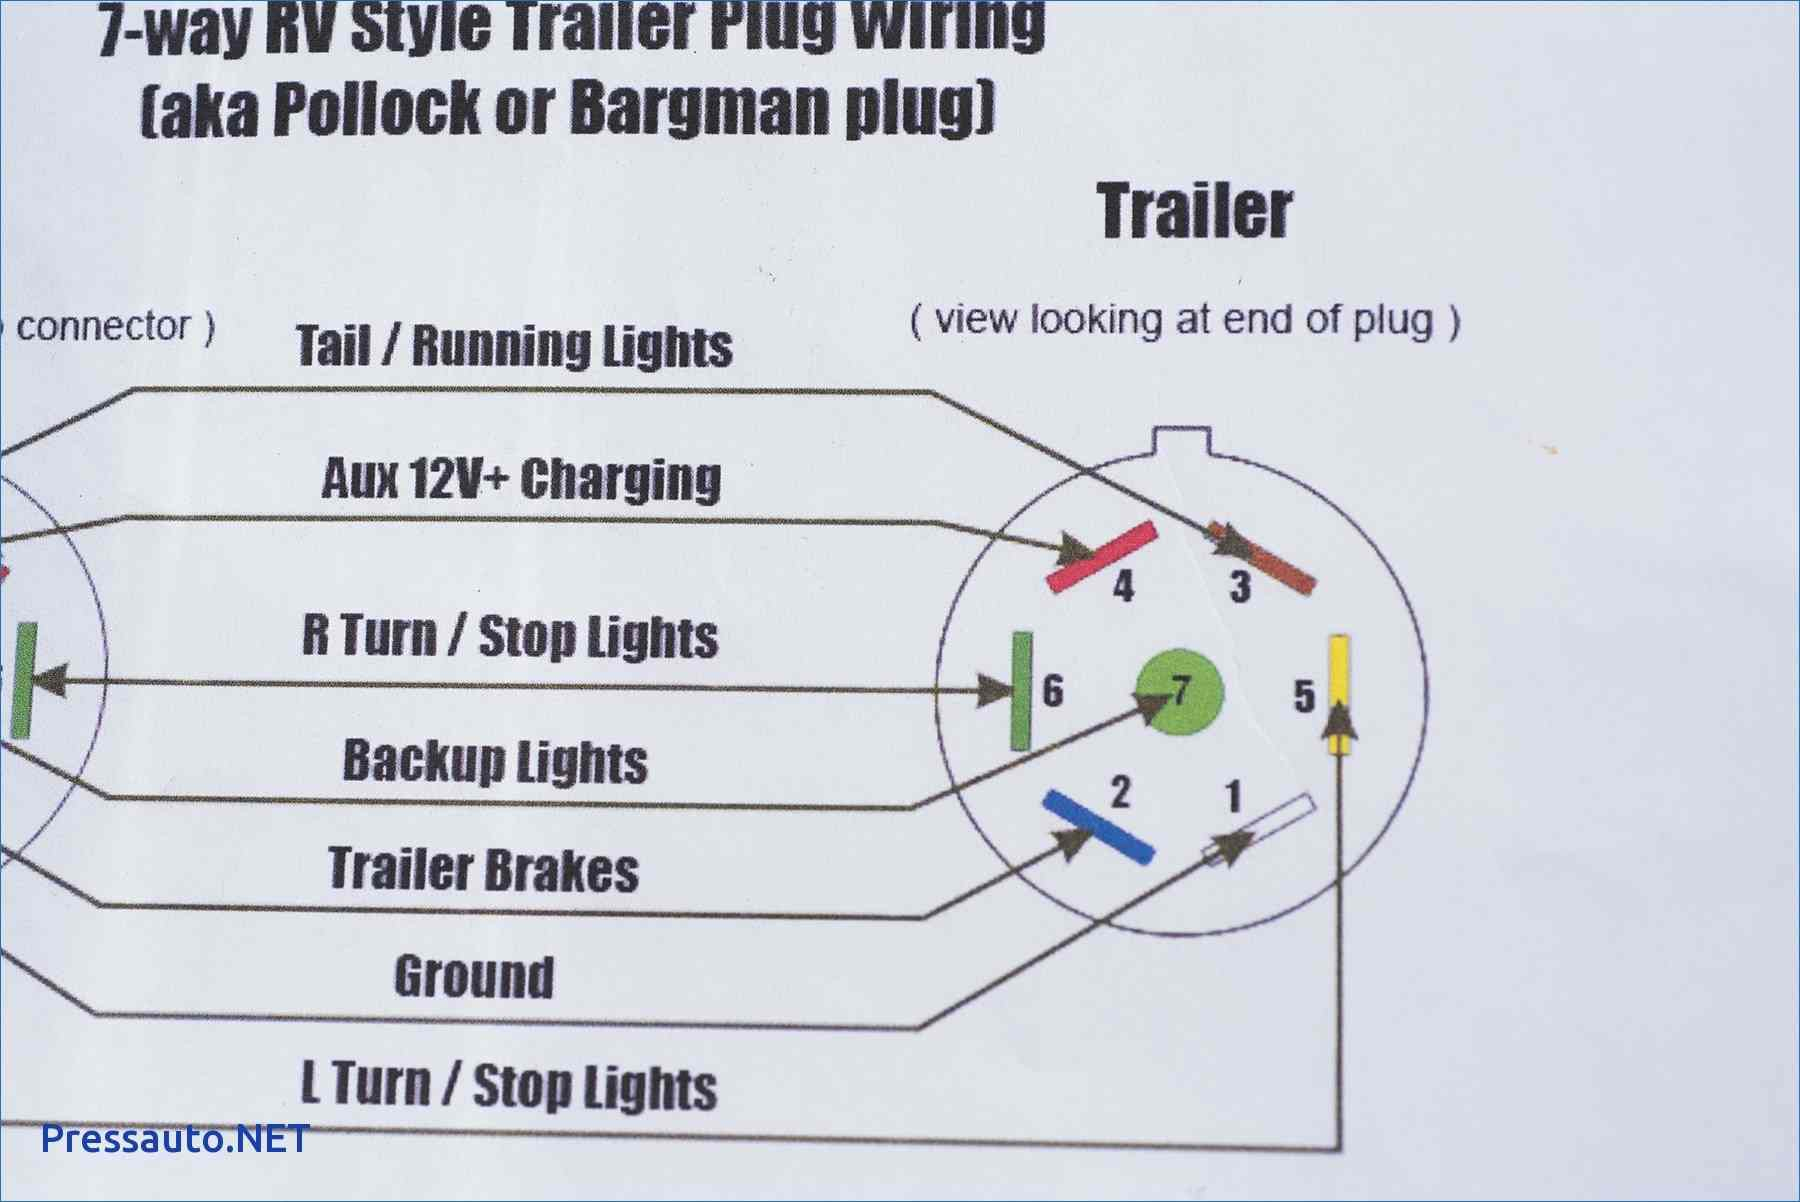 Ford 7 Way Plug Wiring | Manual E-Books - Ford Trailer Wiring Diagram 7 Way